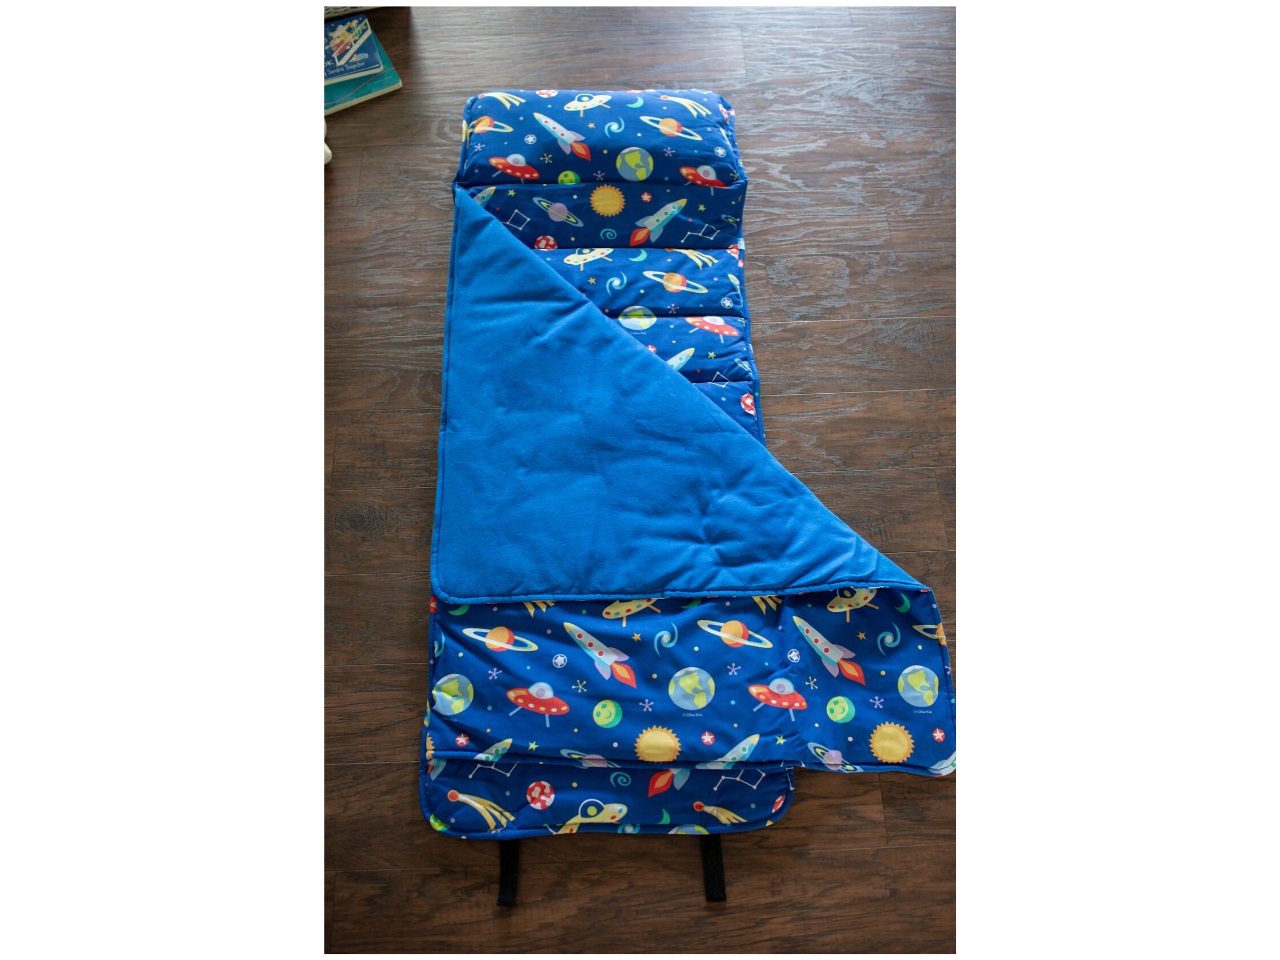 Original Nap Mat - Out of This World